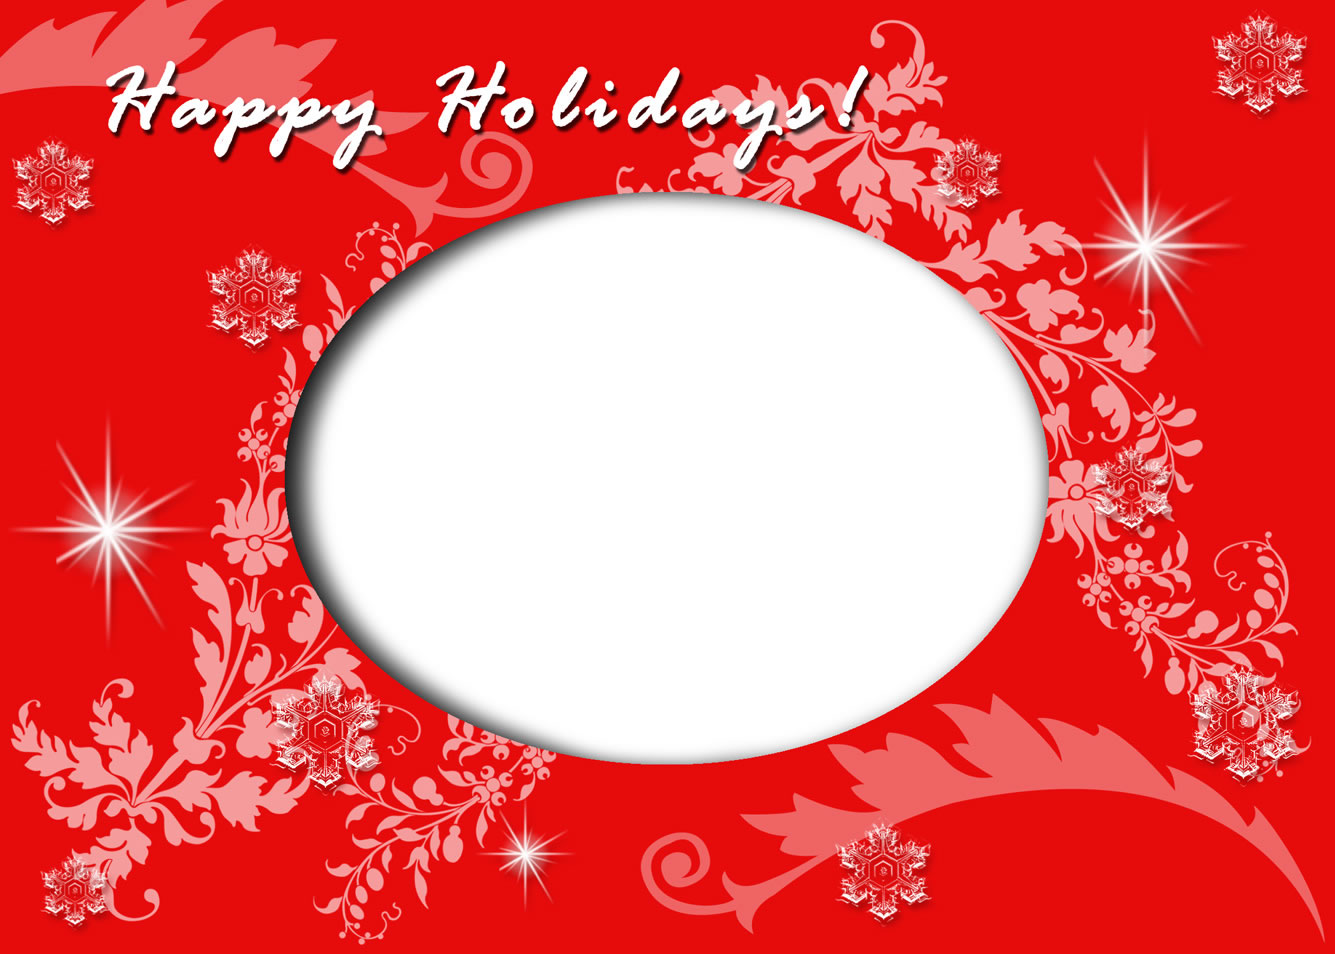 Christmas card templates rtcrita 39 s blog for Free christmas card templates for photographers